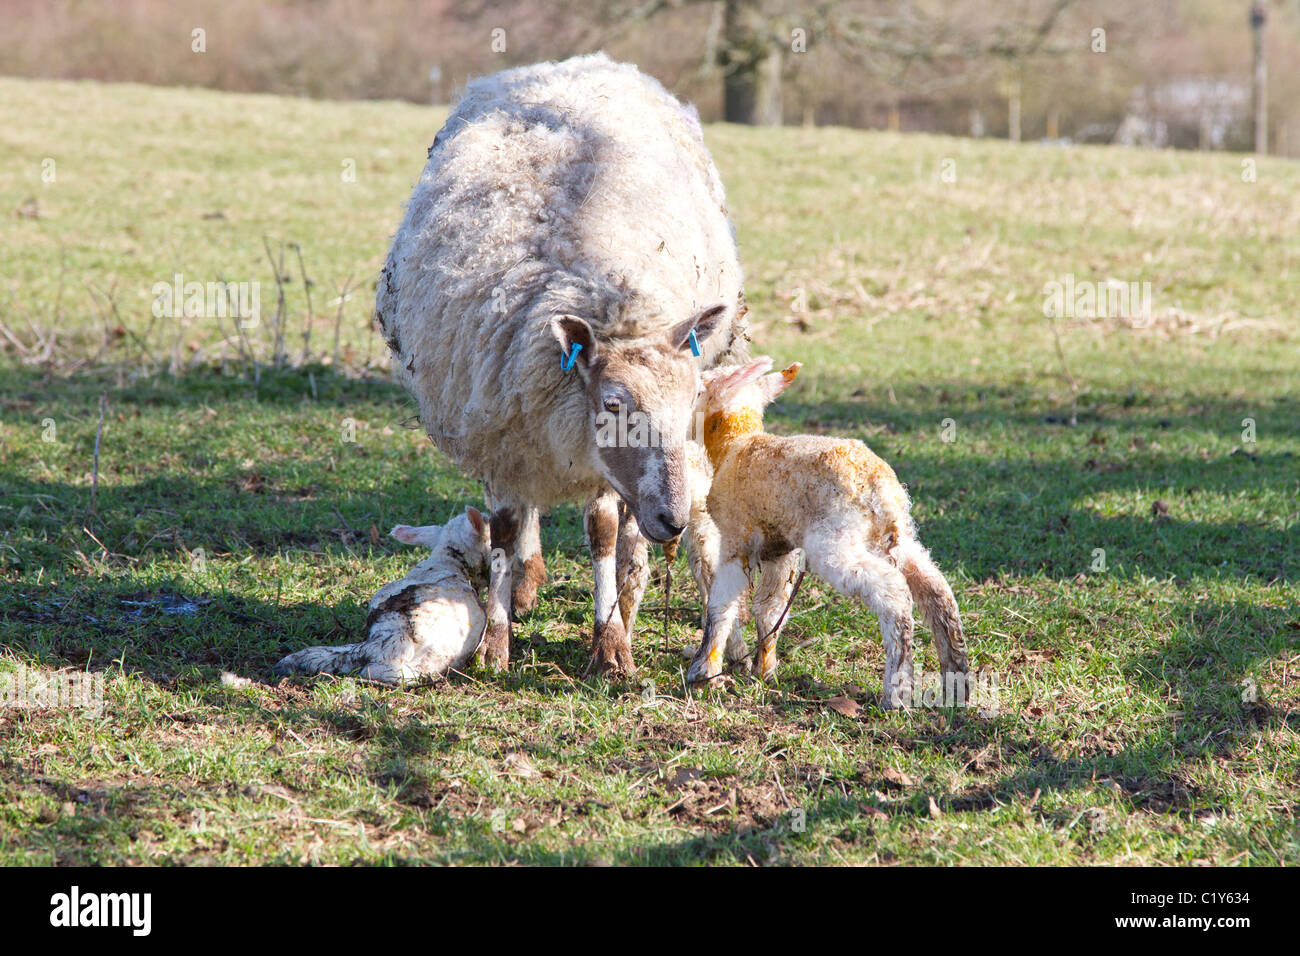 new born lambs with mother - Stock Image